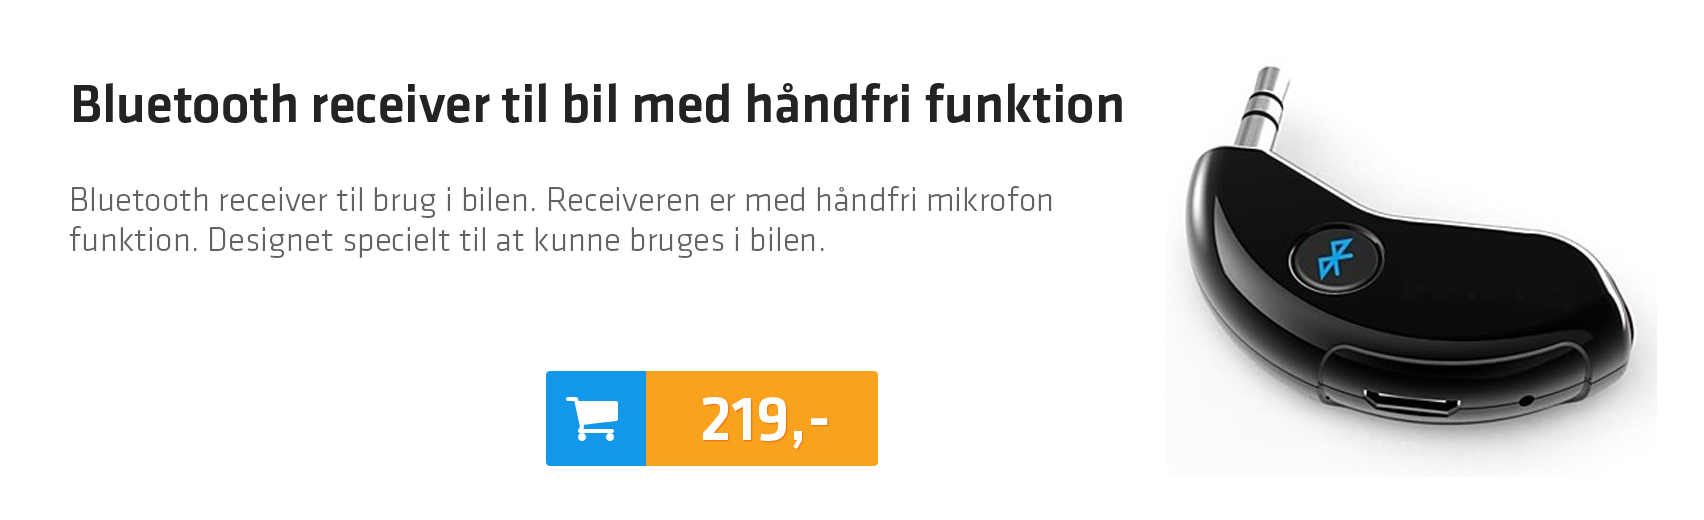 Bluetooth receiver til bil med håndfri funktion